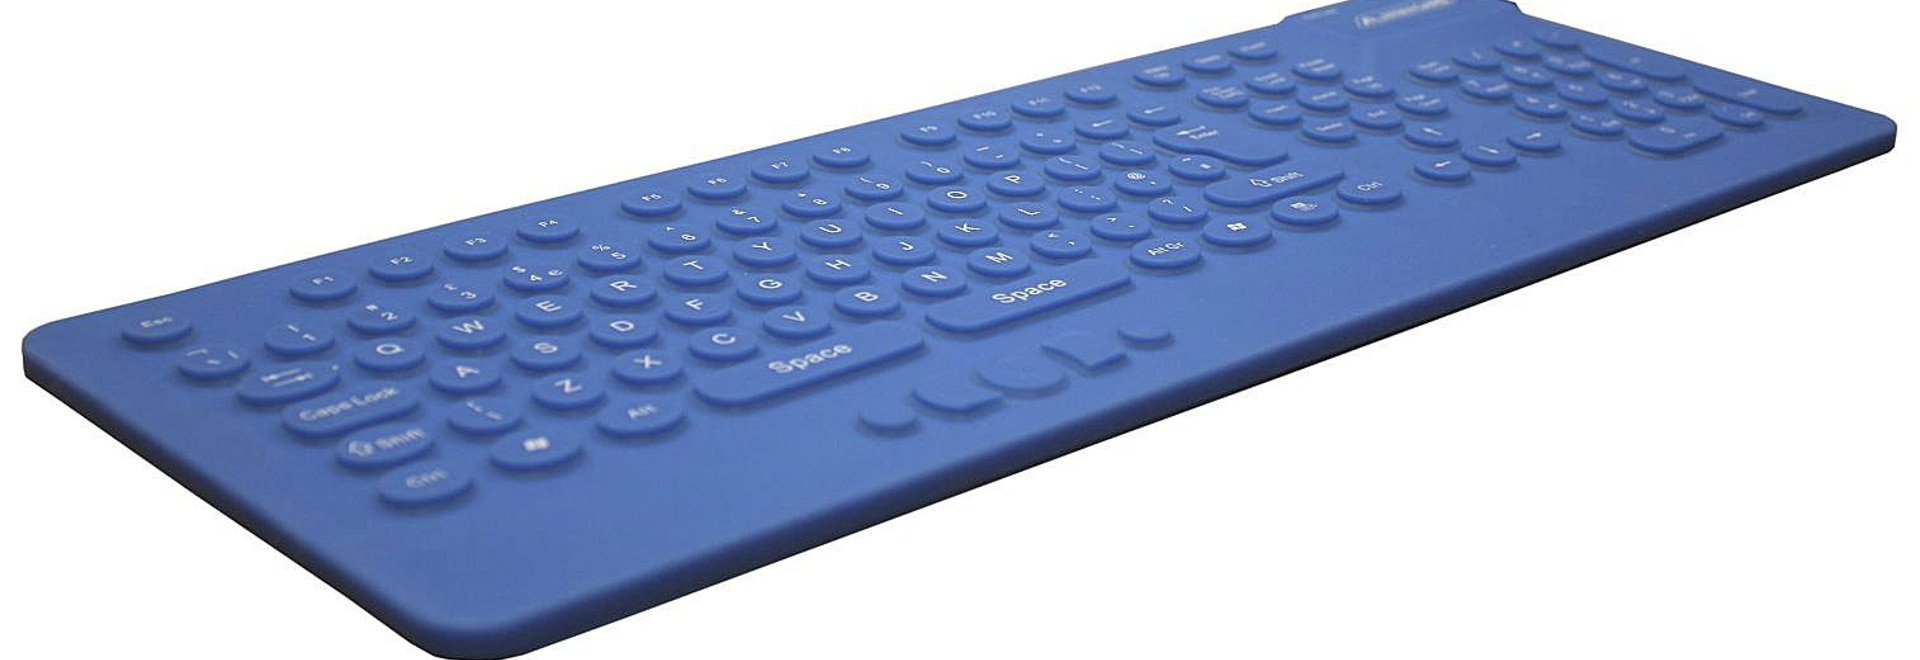 Medical Keyboard – Maintain High Hygiene Standards across Your Medical Facility